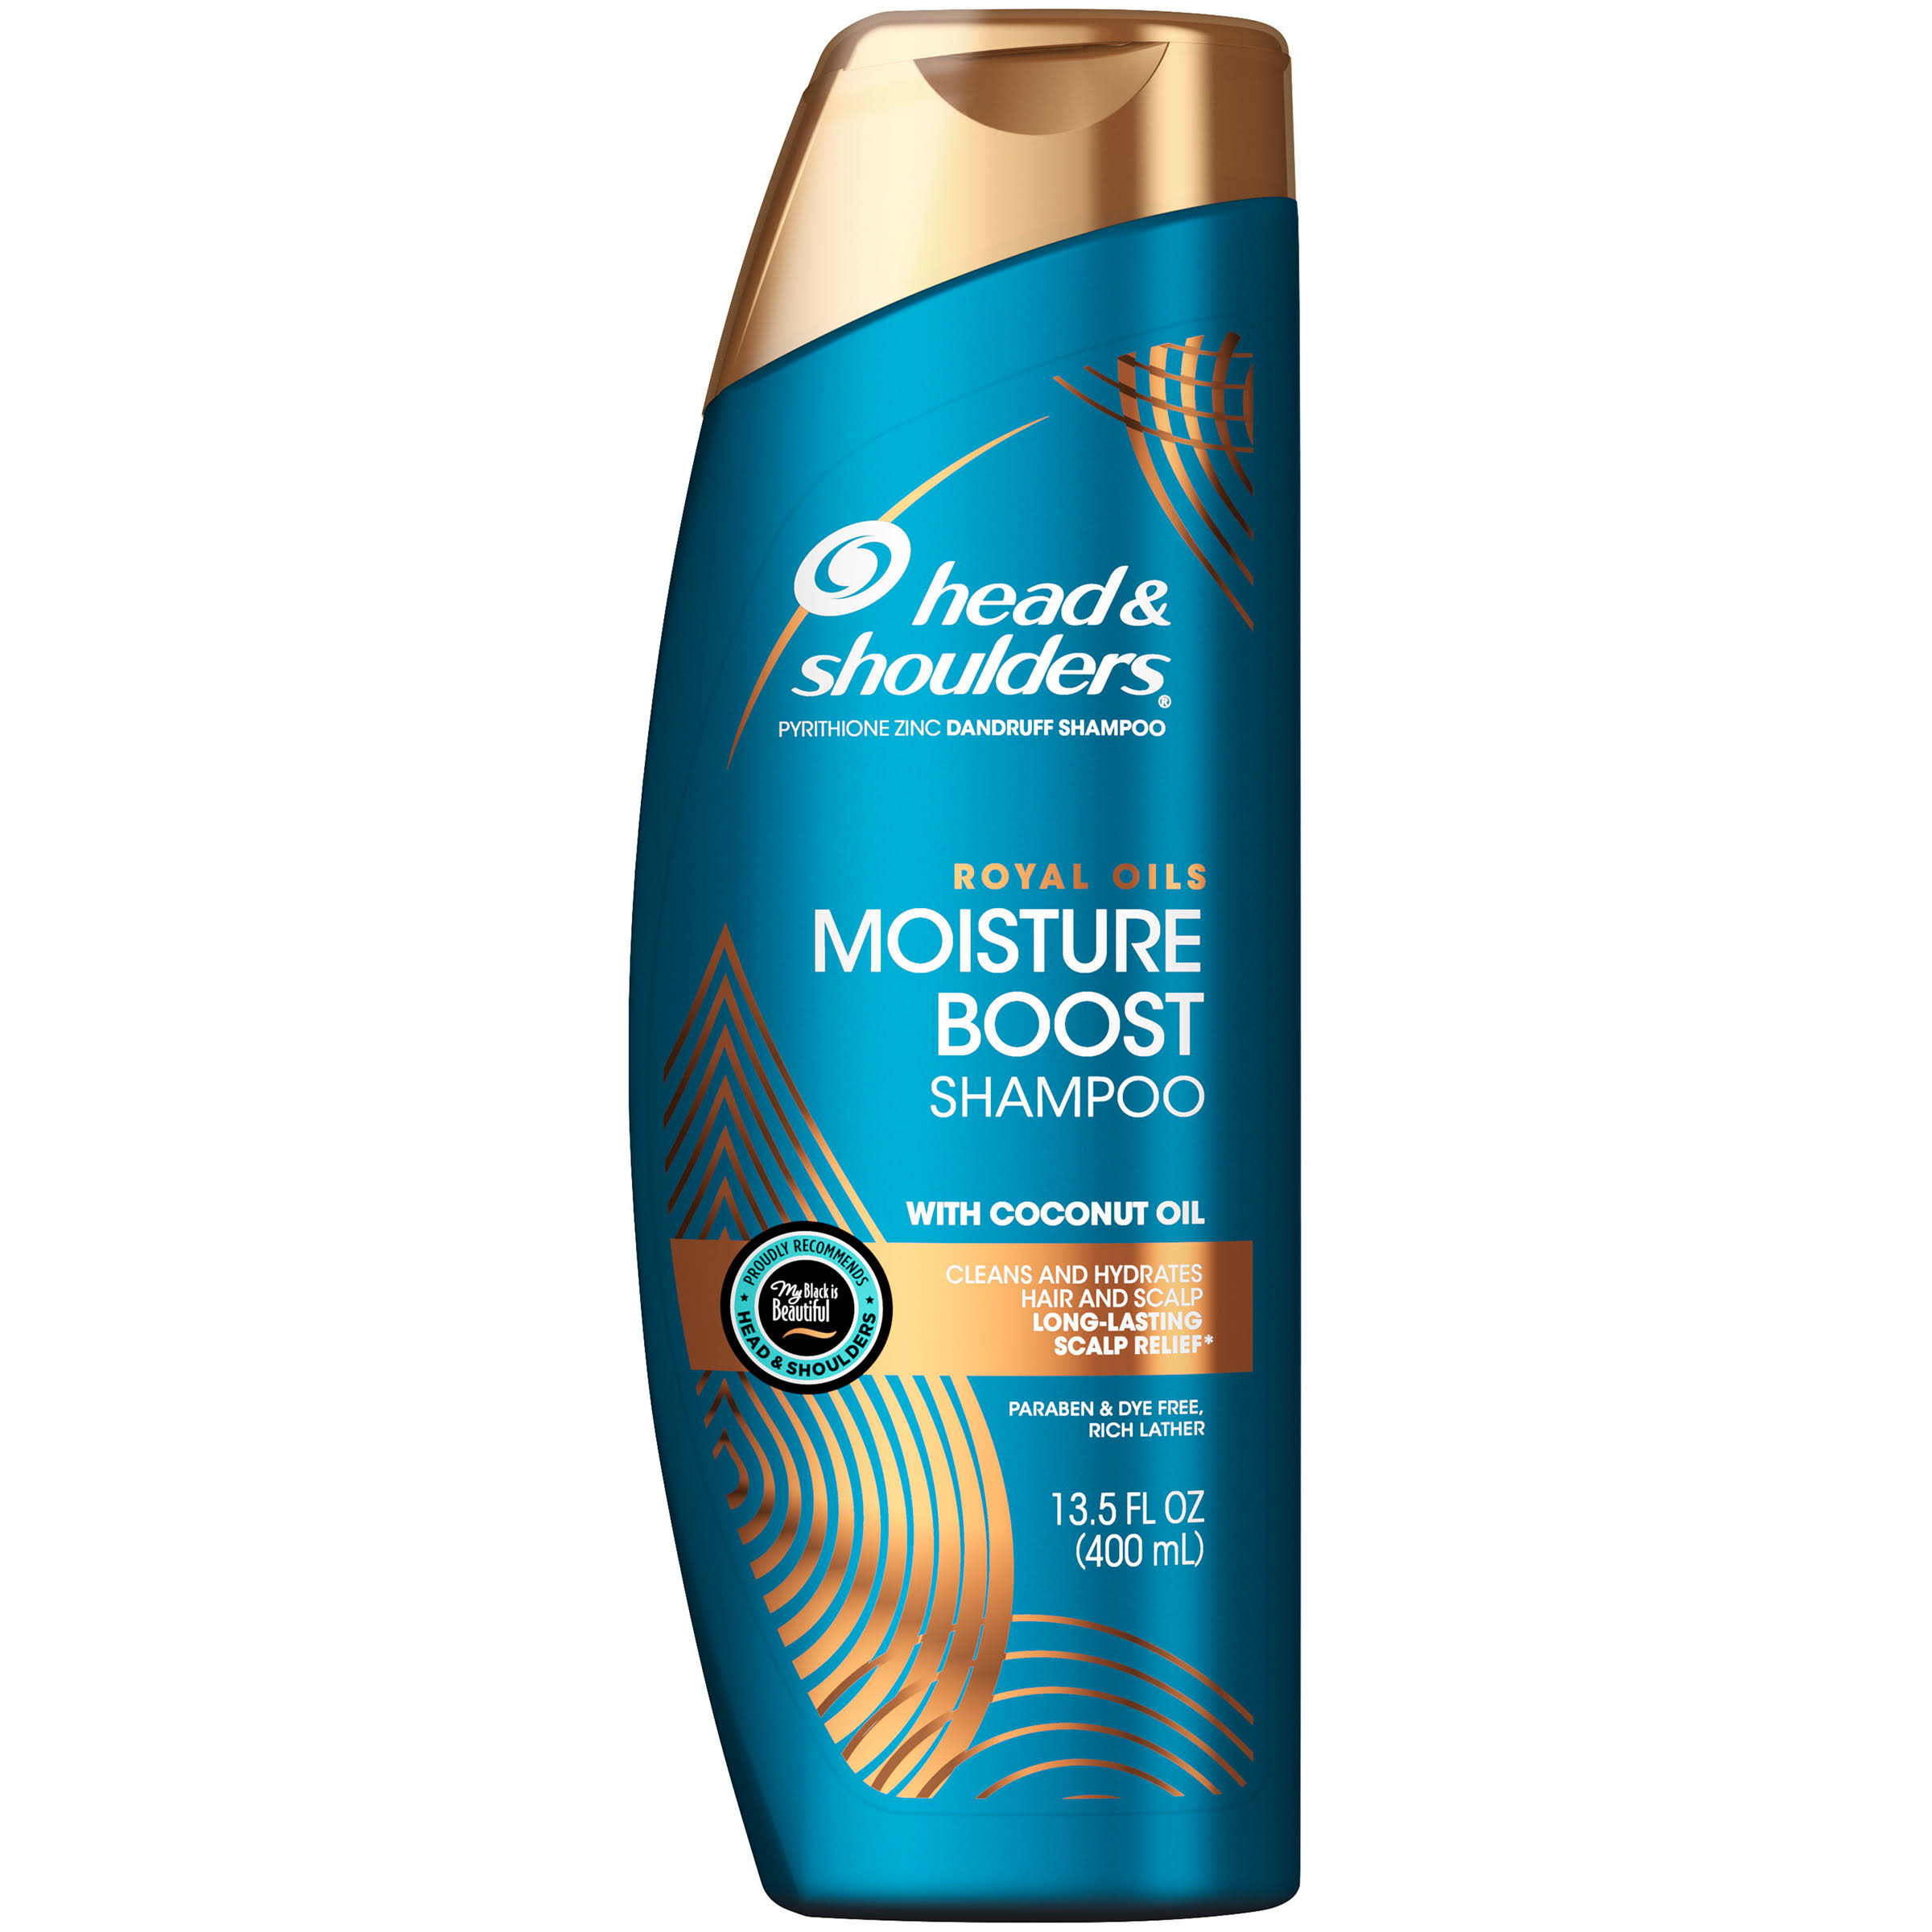 Head and Shoulders Royal Oils Moisture Boost Shampoo - with Coconut Oil, 13.5oz